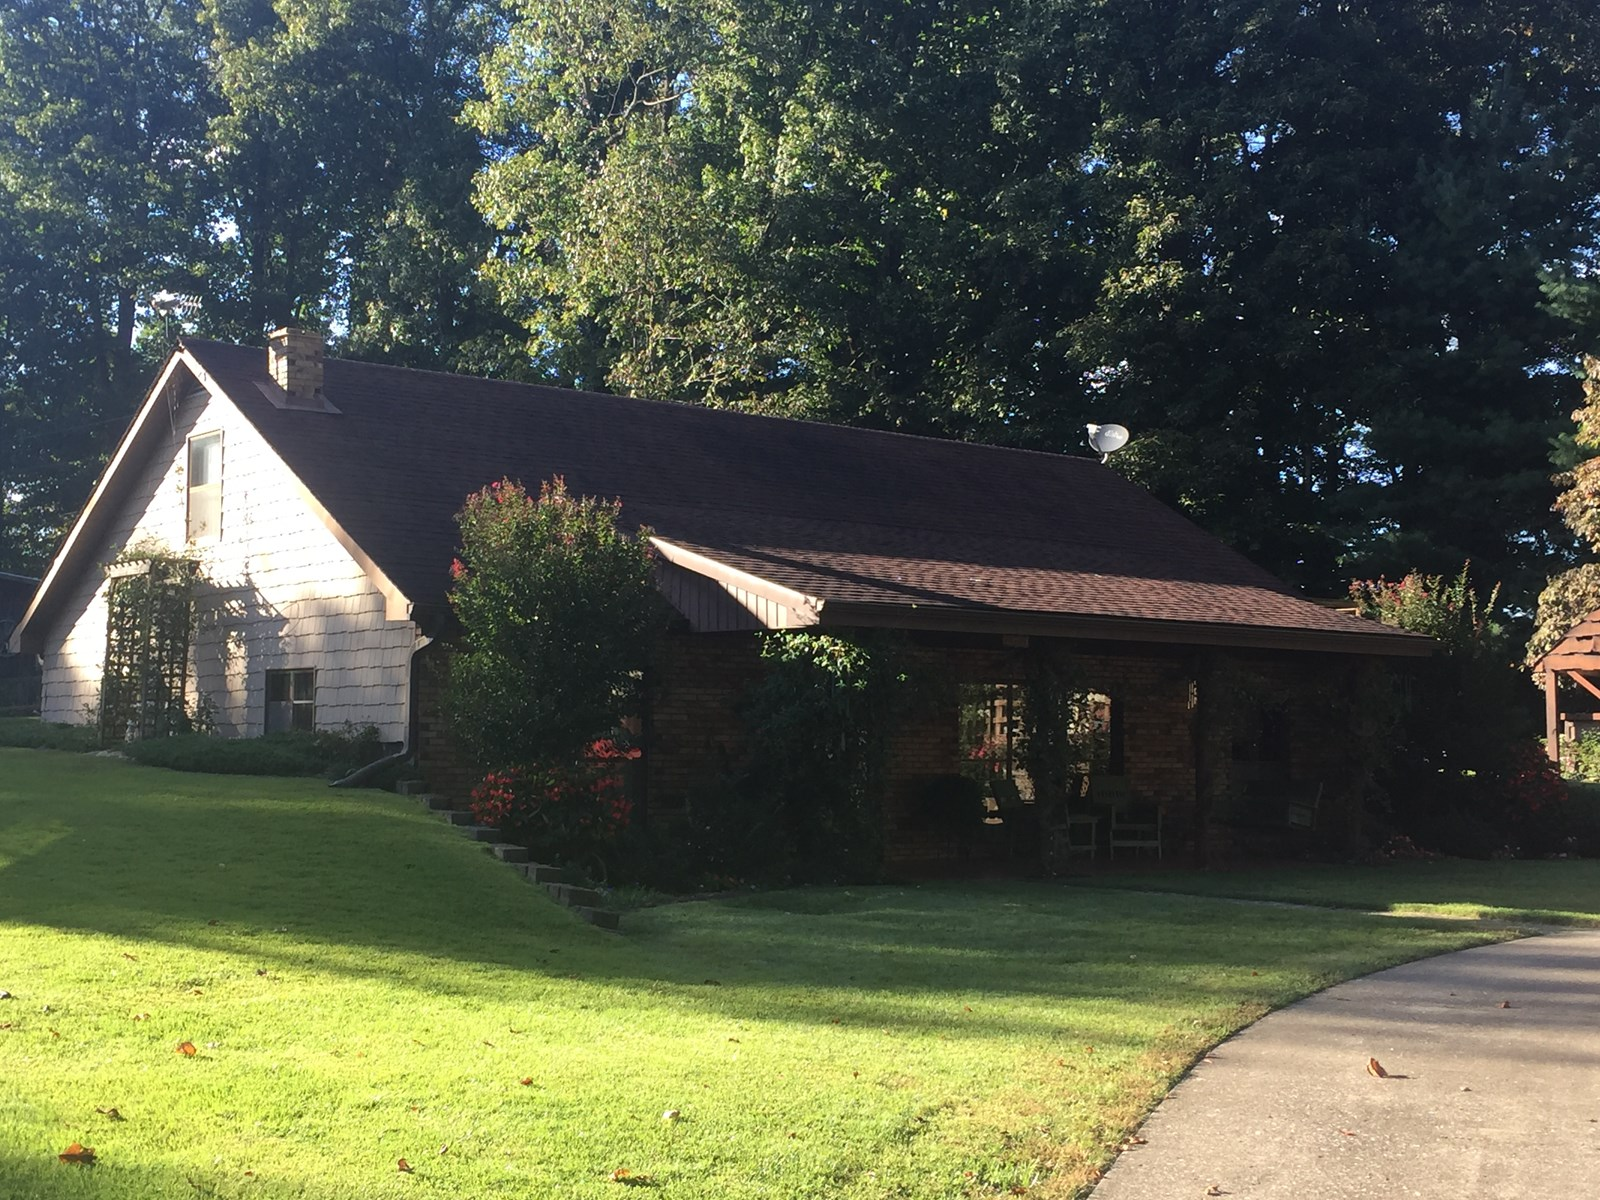 PRICE REDUCED!!! HOME WITH 3 CAR GARAGE/BARN - LIBERTY, KY.